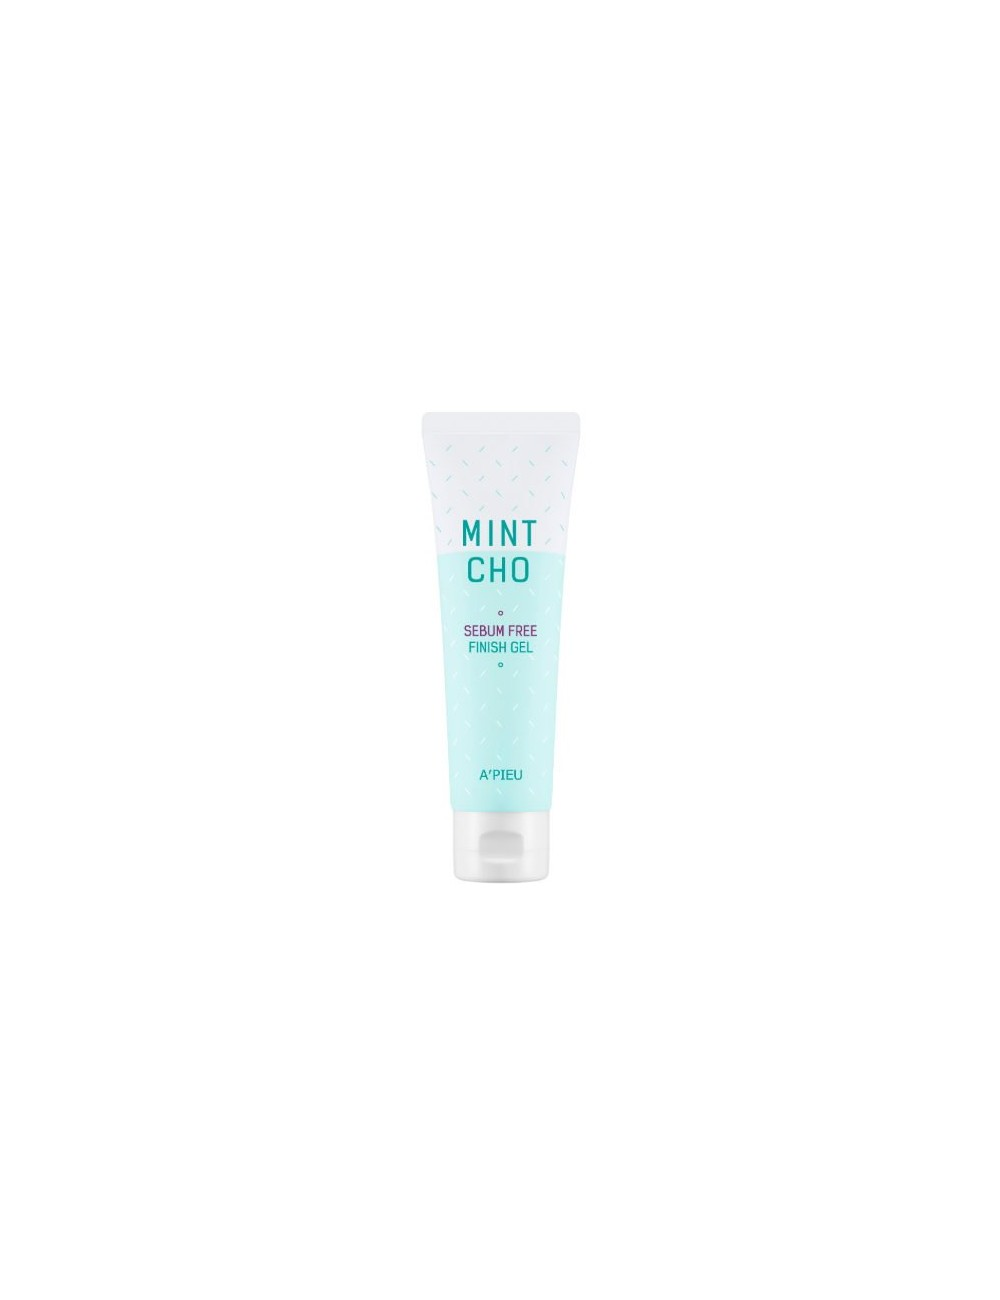 Crema Matificante A'pieu Mint Cho Sebum Free Finish Gel